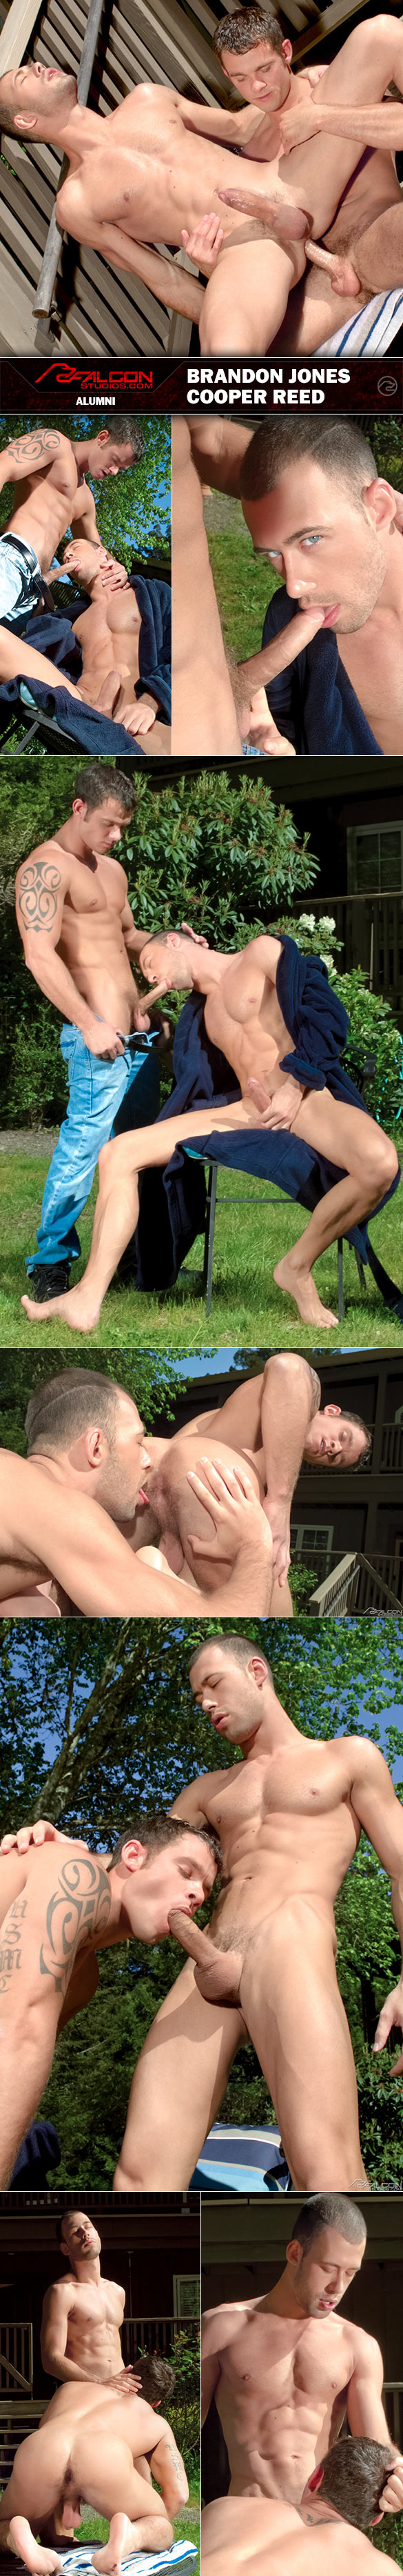 "Falcon Studios: Cooper Reed fucks Brandon Jones in ""Alumni"""